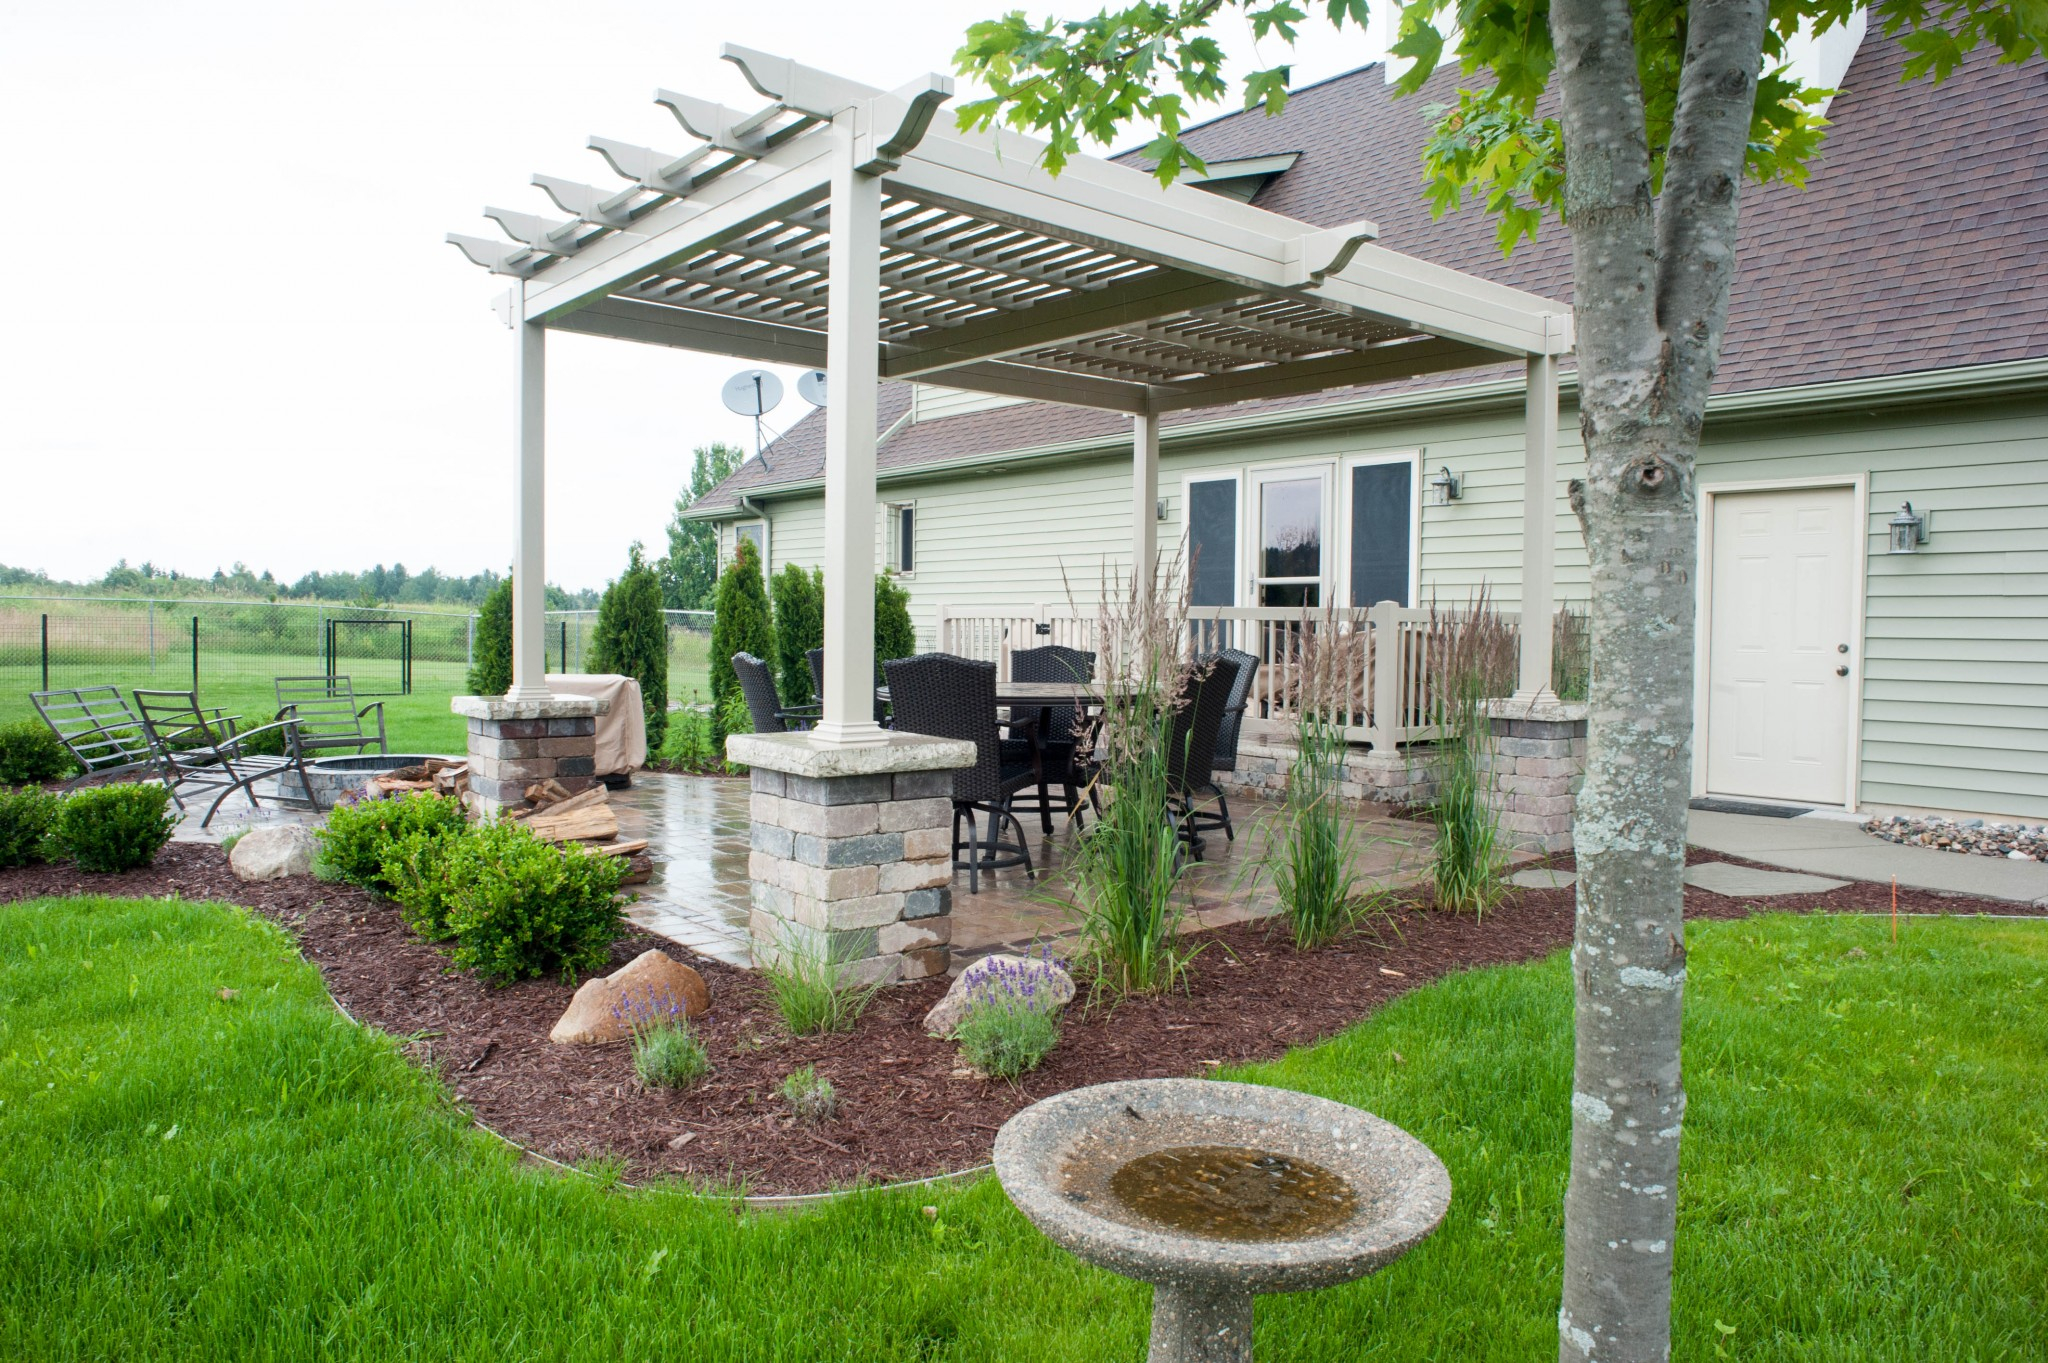 Pergola Over Paver Patio With Fire Pit Rd Landscape throughout size 2048 X 1363